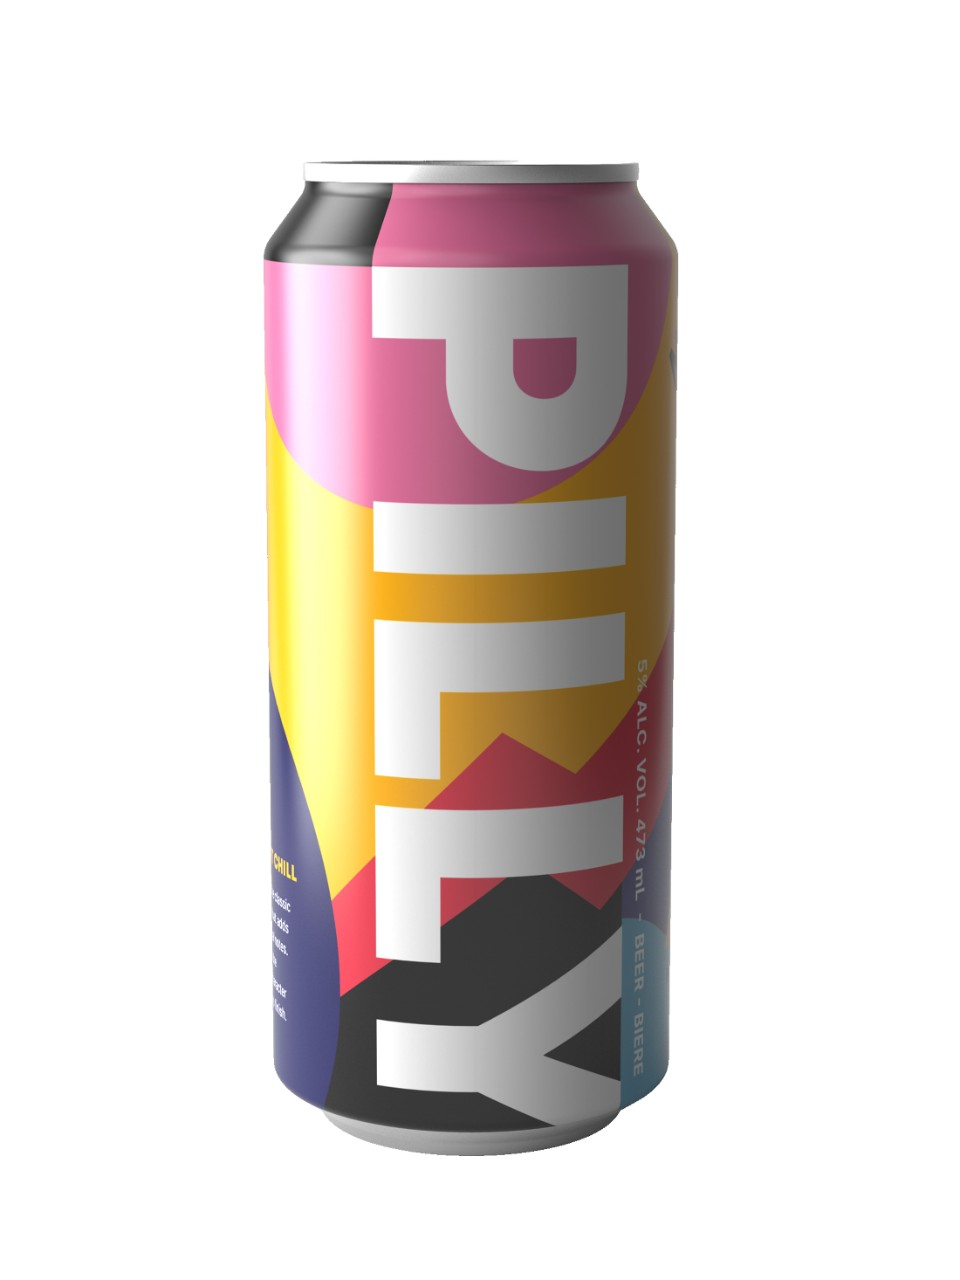 Mascot Pilsner from LCBO